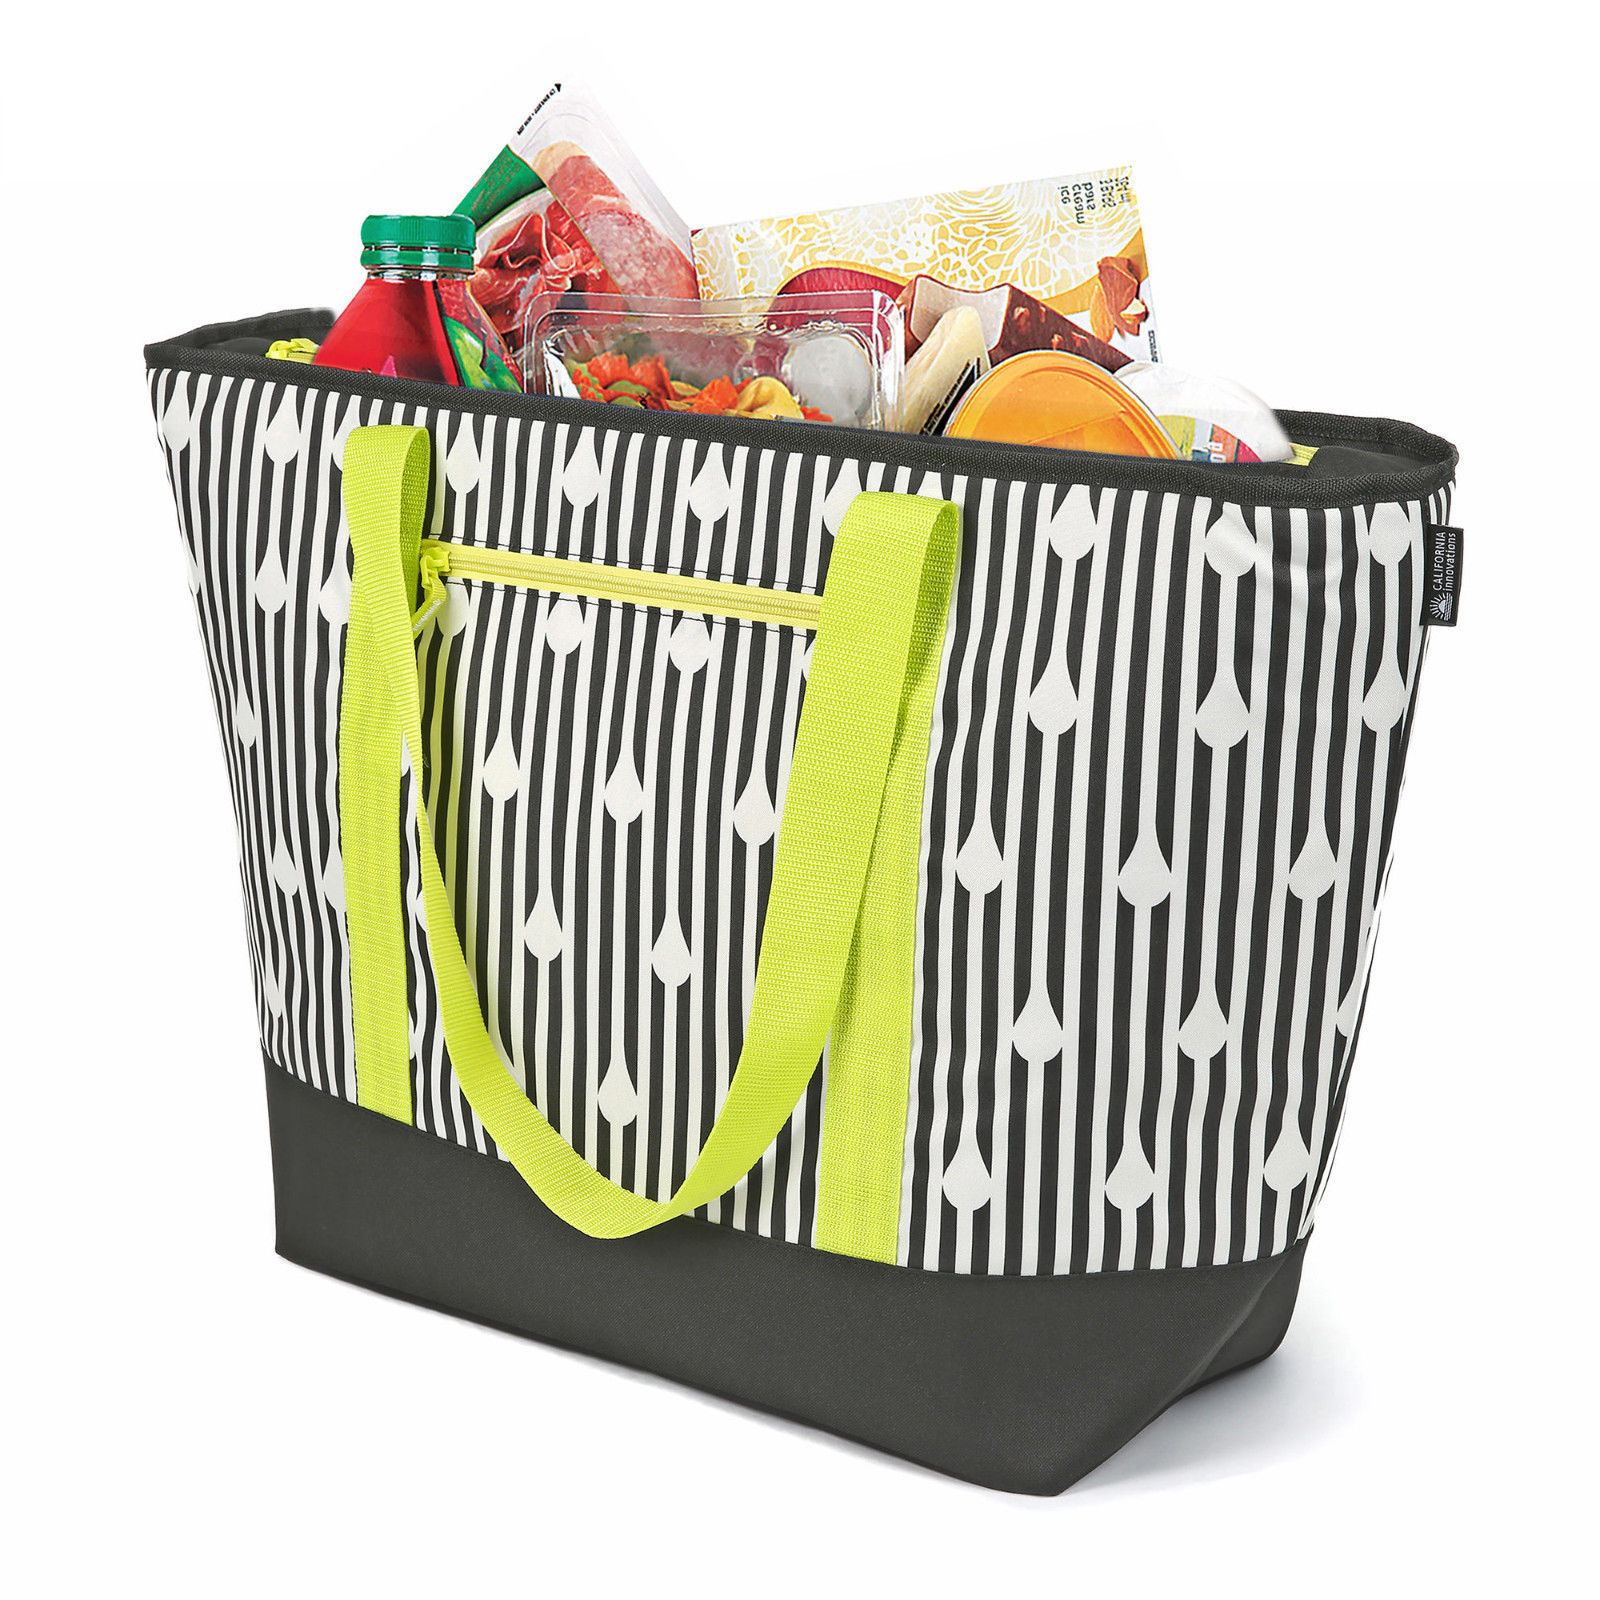 Insulated Soft Cooler Tote Black/White Bag, Size For The Beach, Picnic, Outdoor